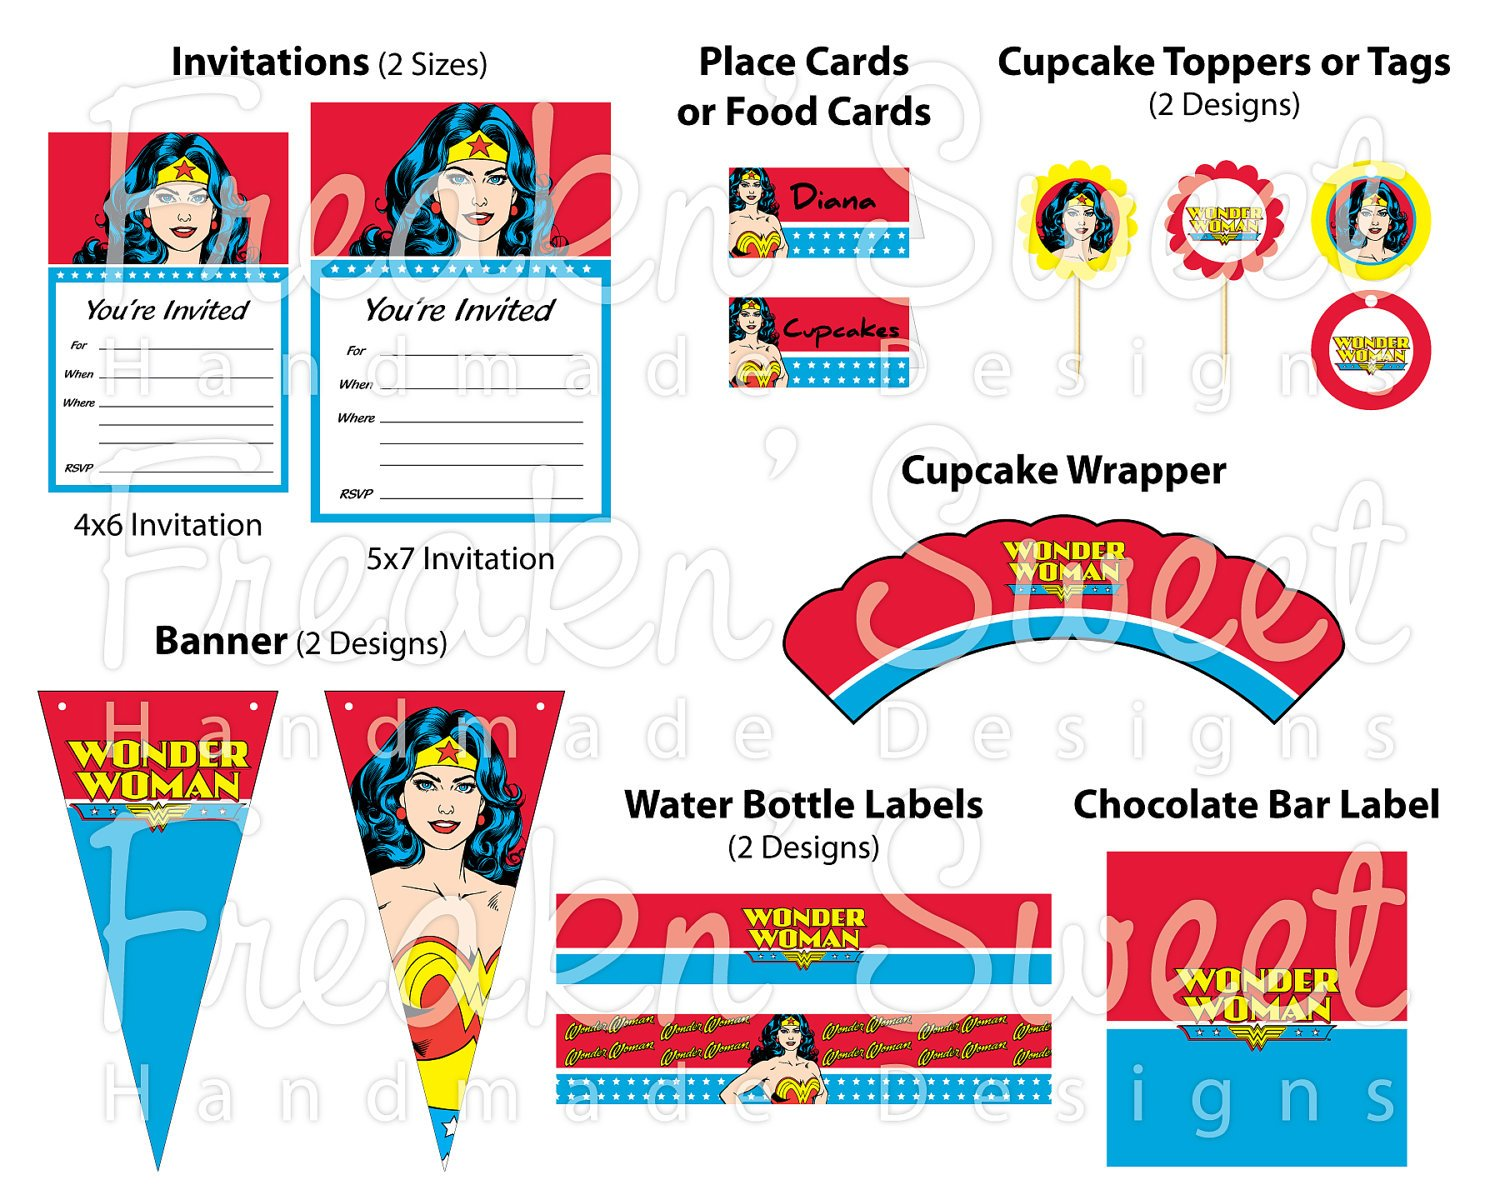 Wonder Woman Party Planning, Ideas, Supplies & Gifts | Superhero Party | PartyIdeaPros.com